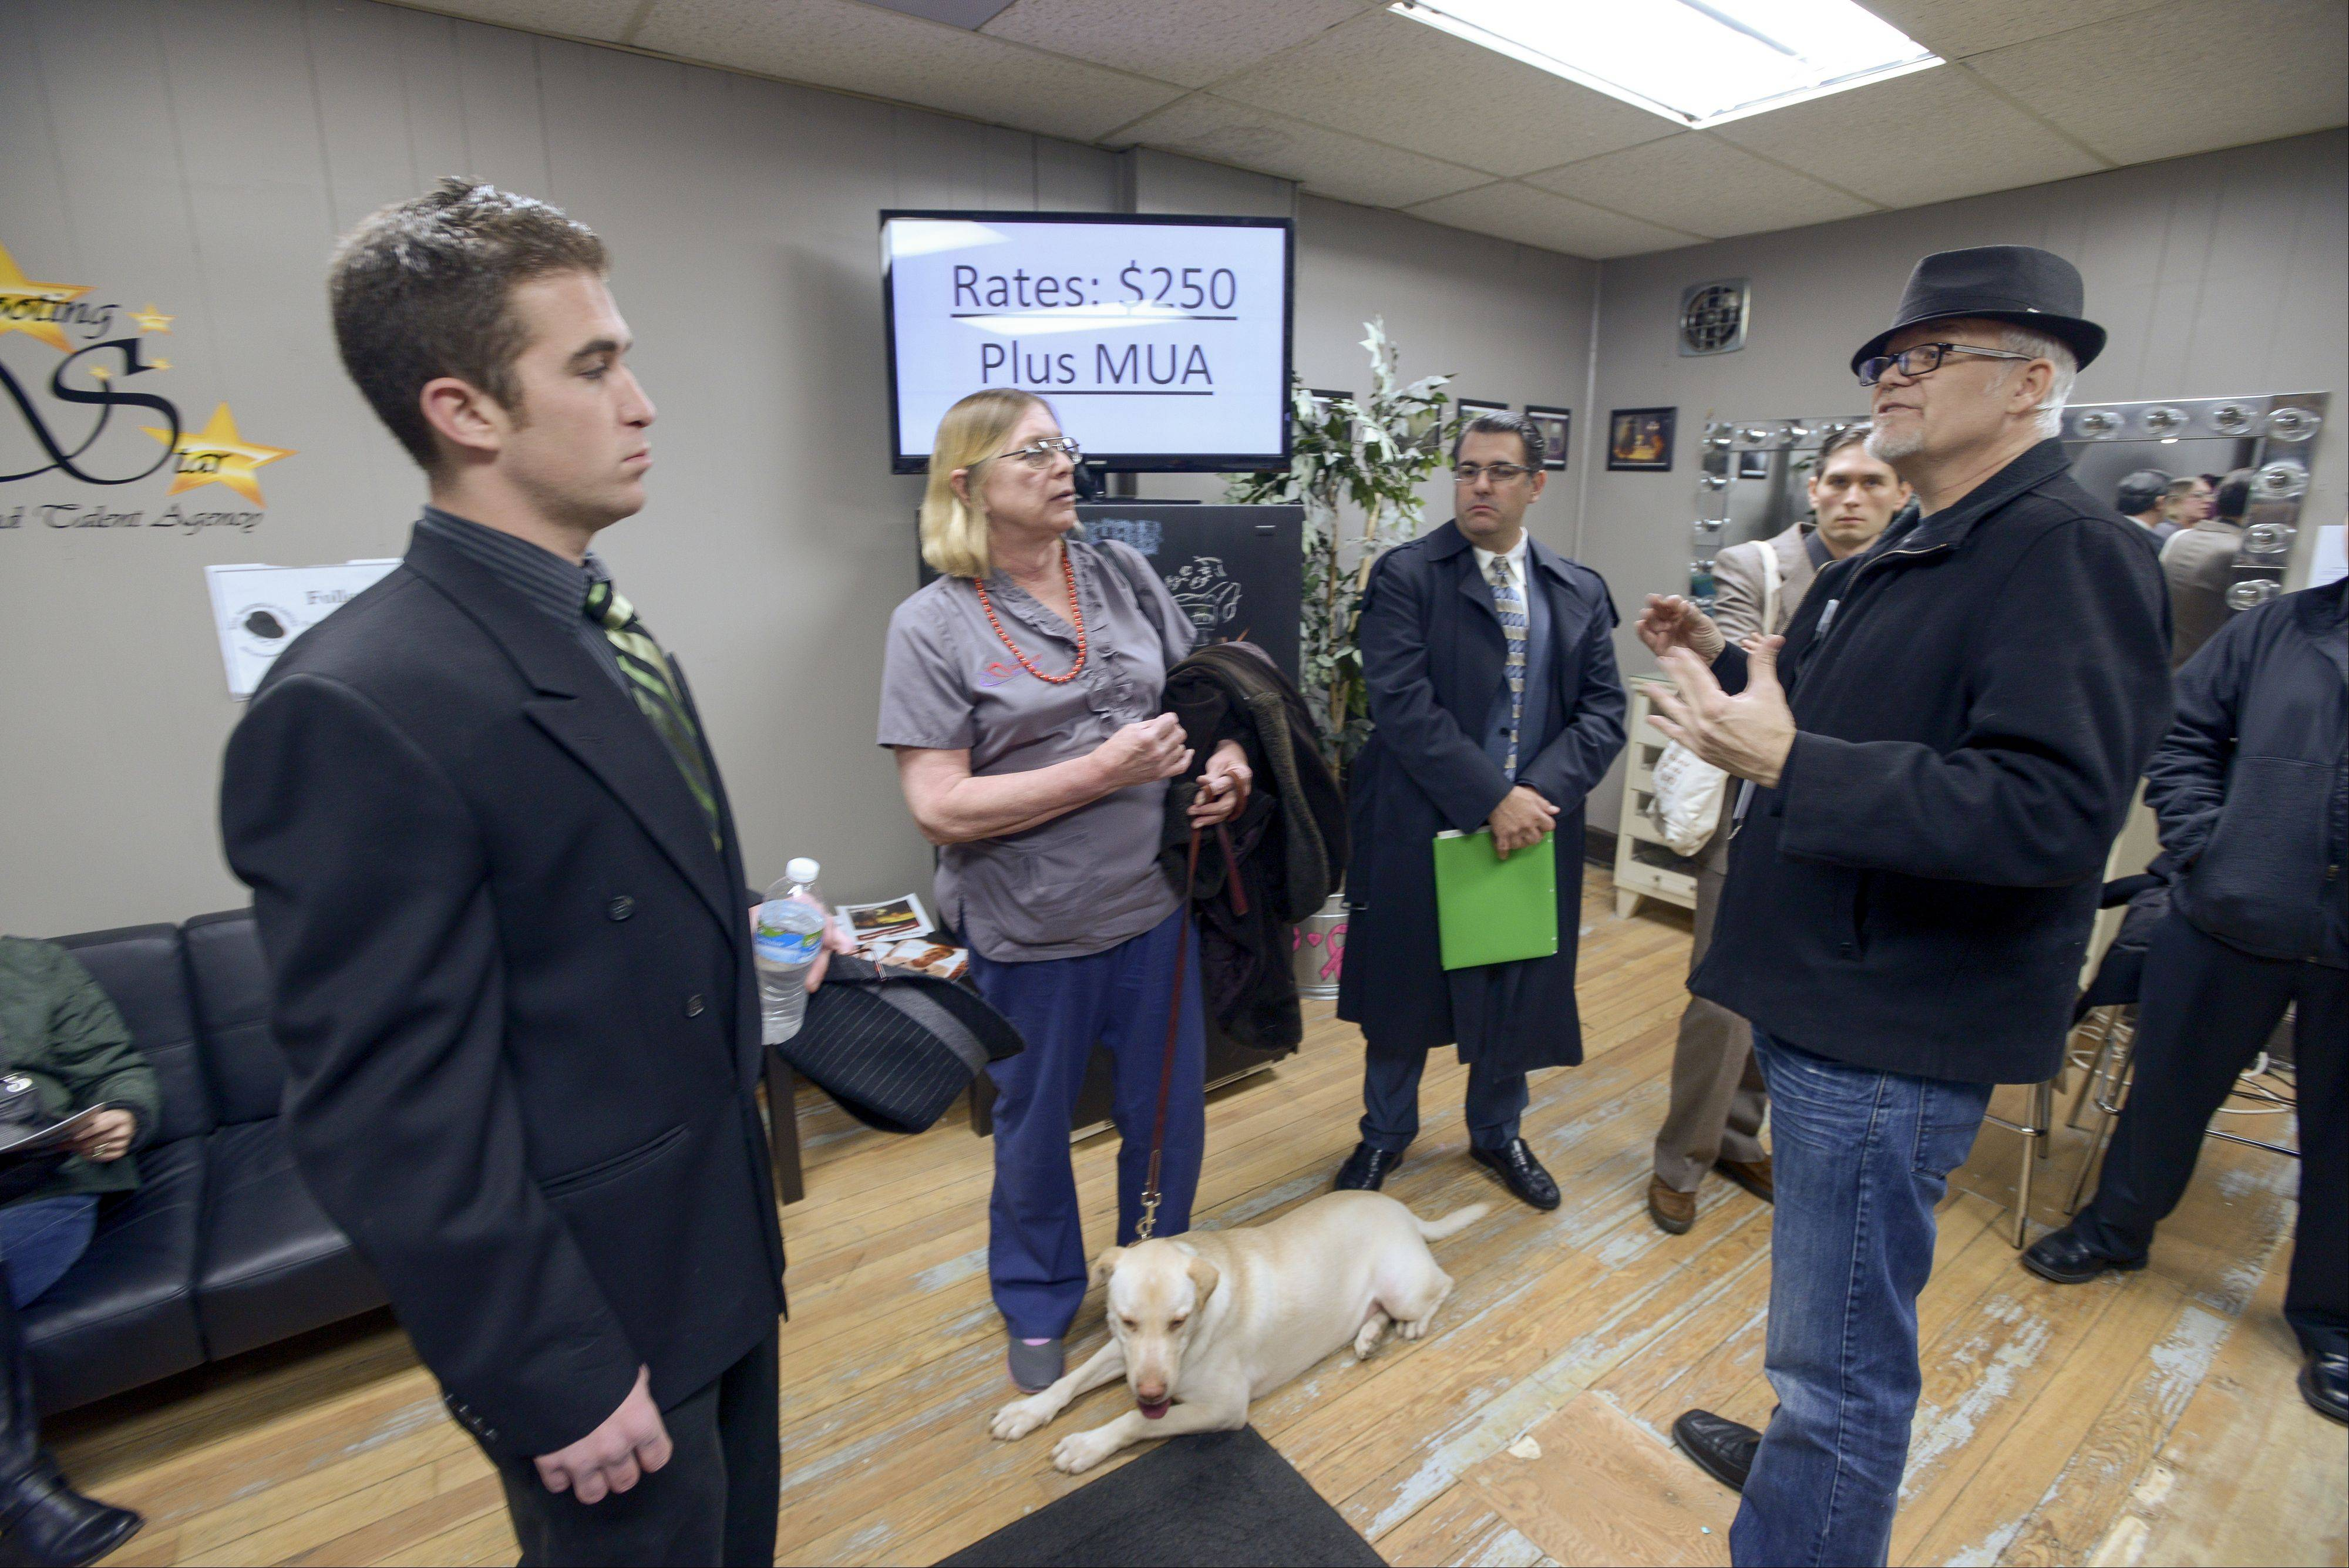 Casting Director for background actors, Bill Marinella, right, talks with some of those interested in background rolls in the the NBC TV show Chicago PD during an open casting call for extras Sunday at Shooting Star Studios in St. Charles.